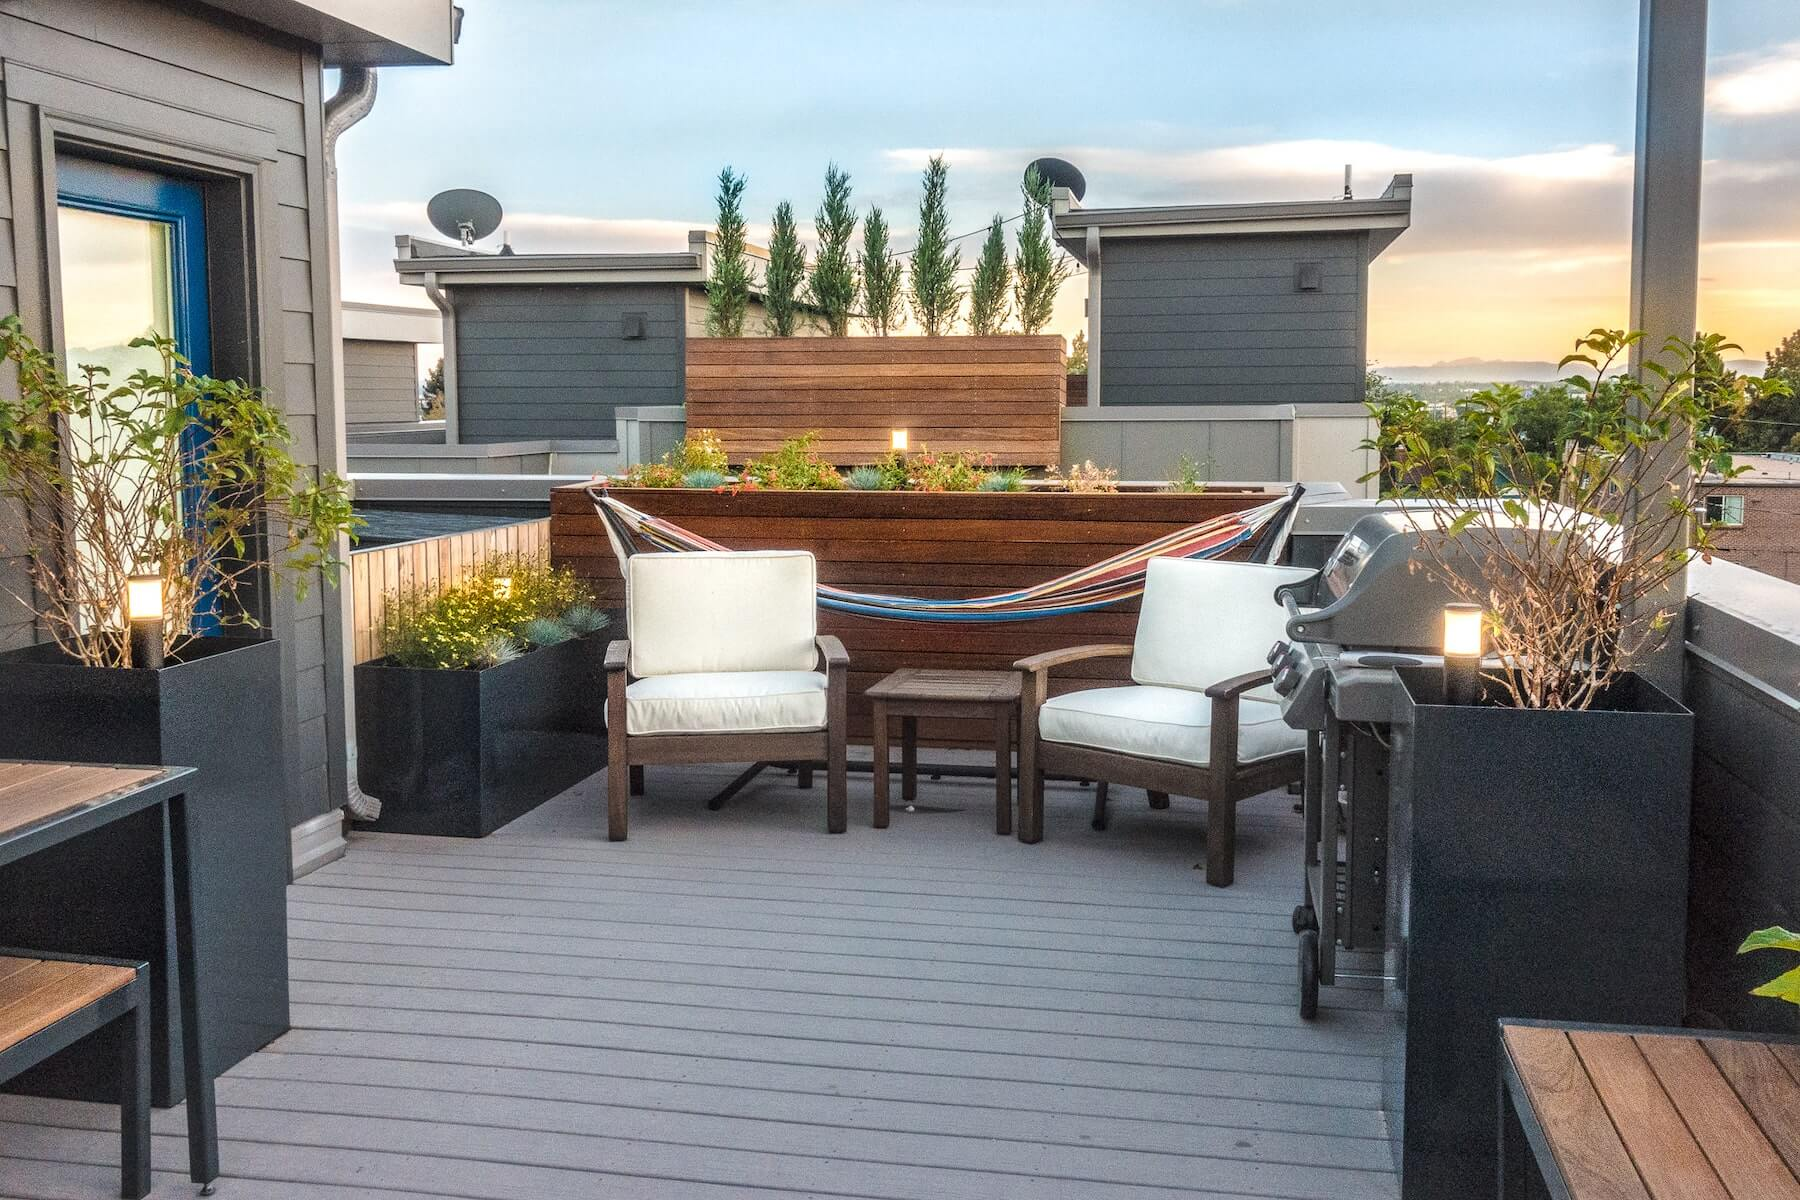 Sitting Area With Built-In Planters